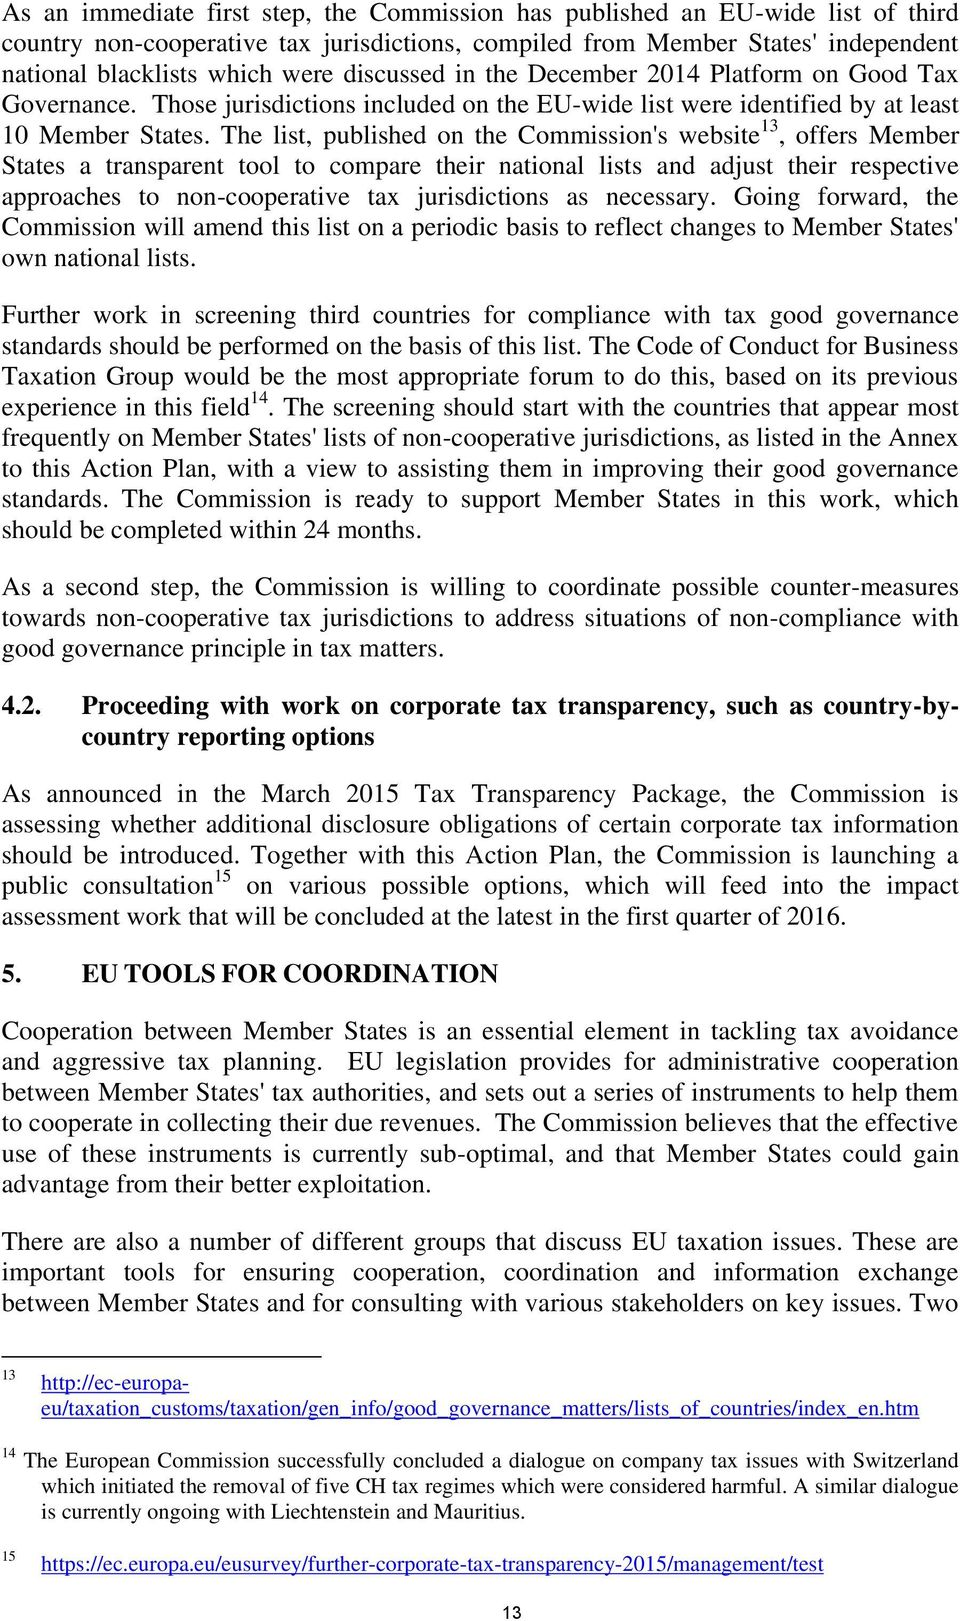 The list, published on the Commission's website 13, offers Member States a transparent tool to compare their national lists and adjust their respective approaches to non-cooperative tax jurisdictions